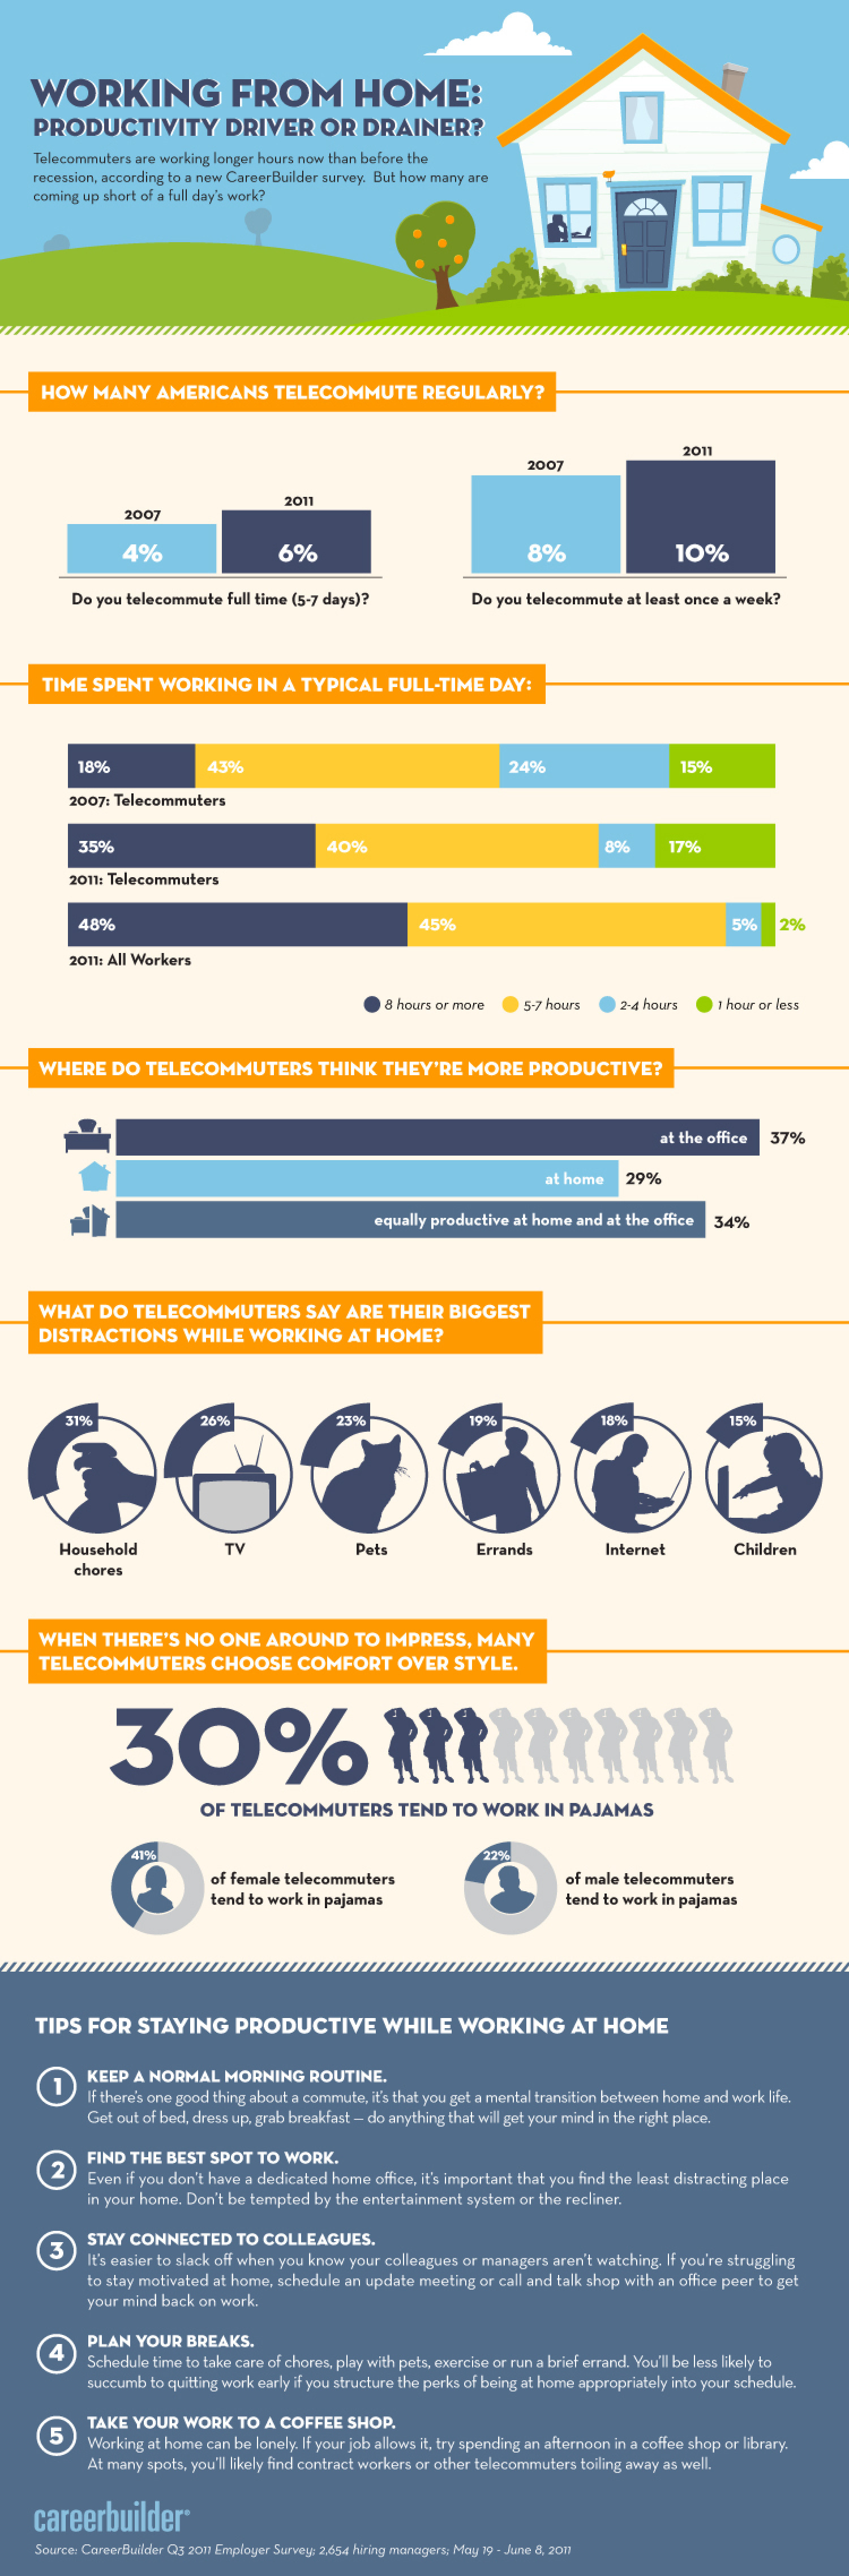 Working From Home: Productivity Driver or Drainer? Infographic